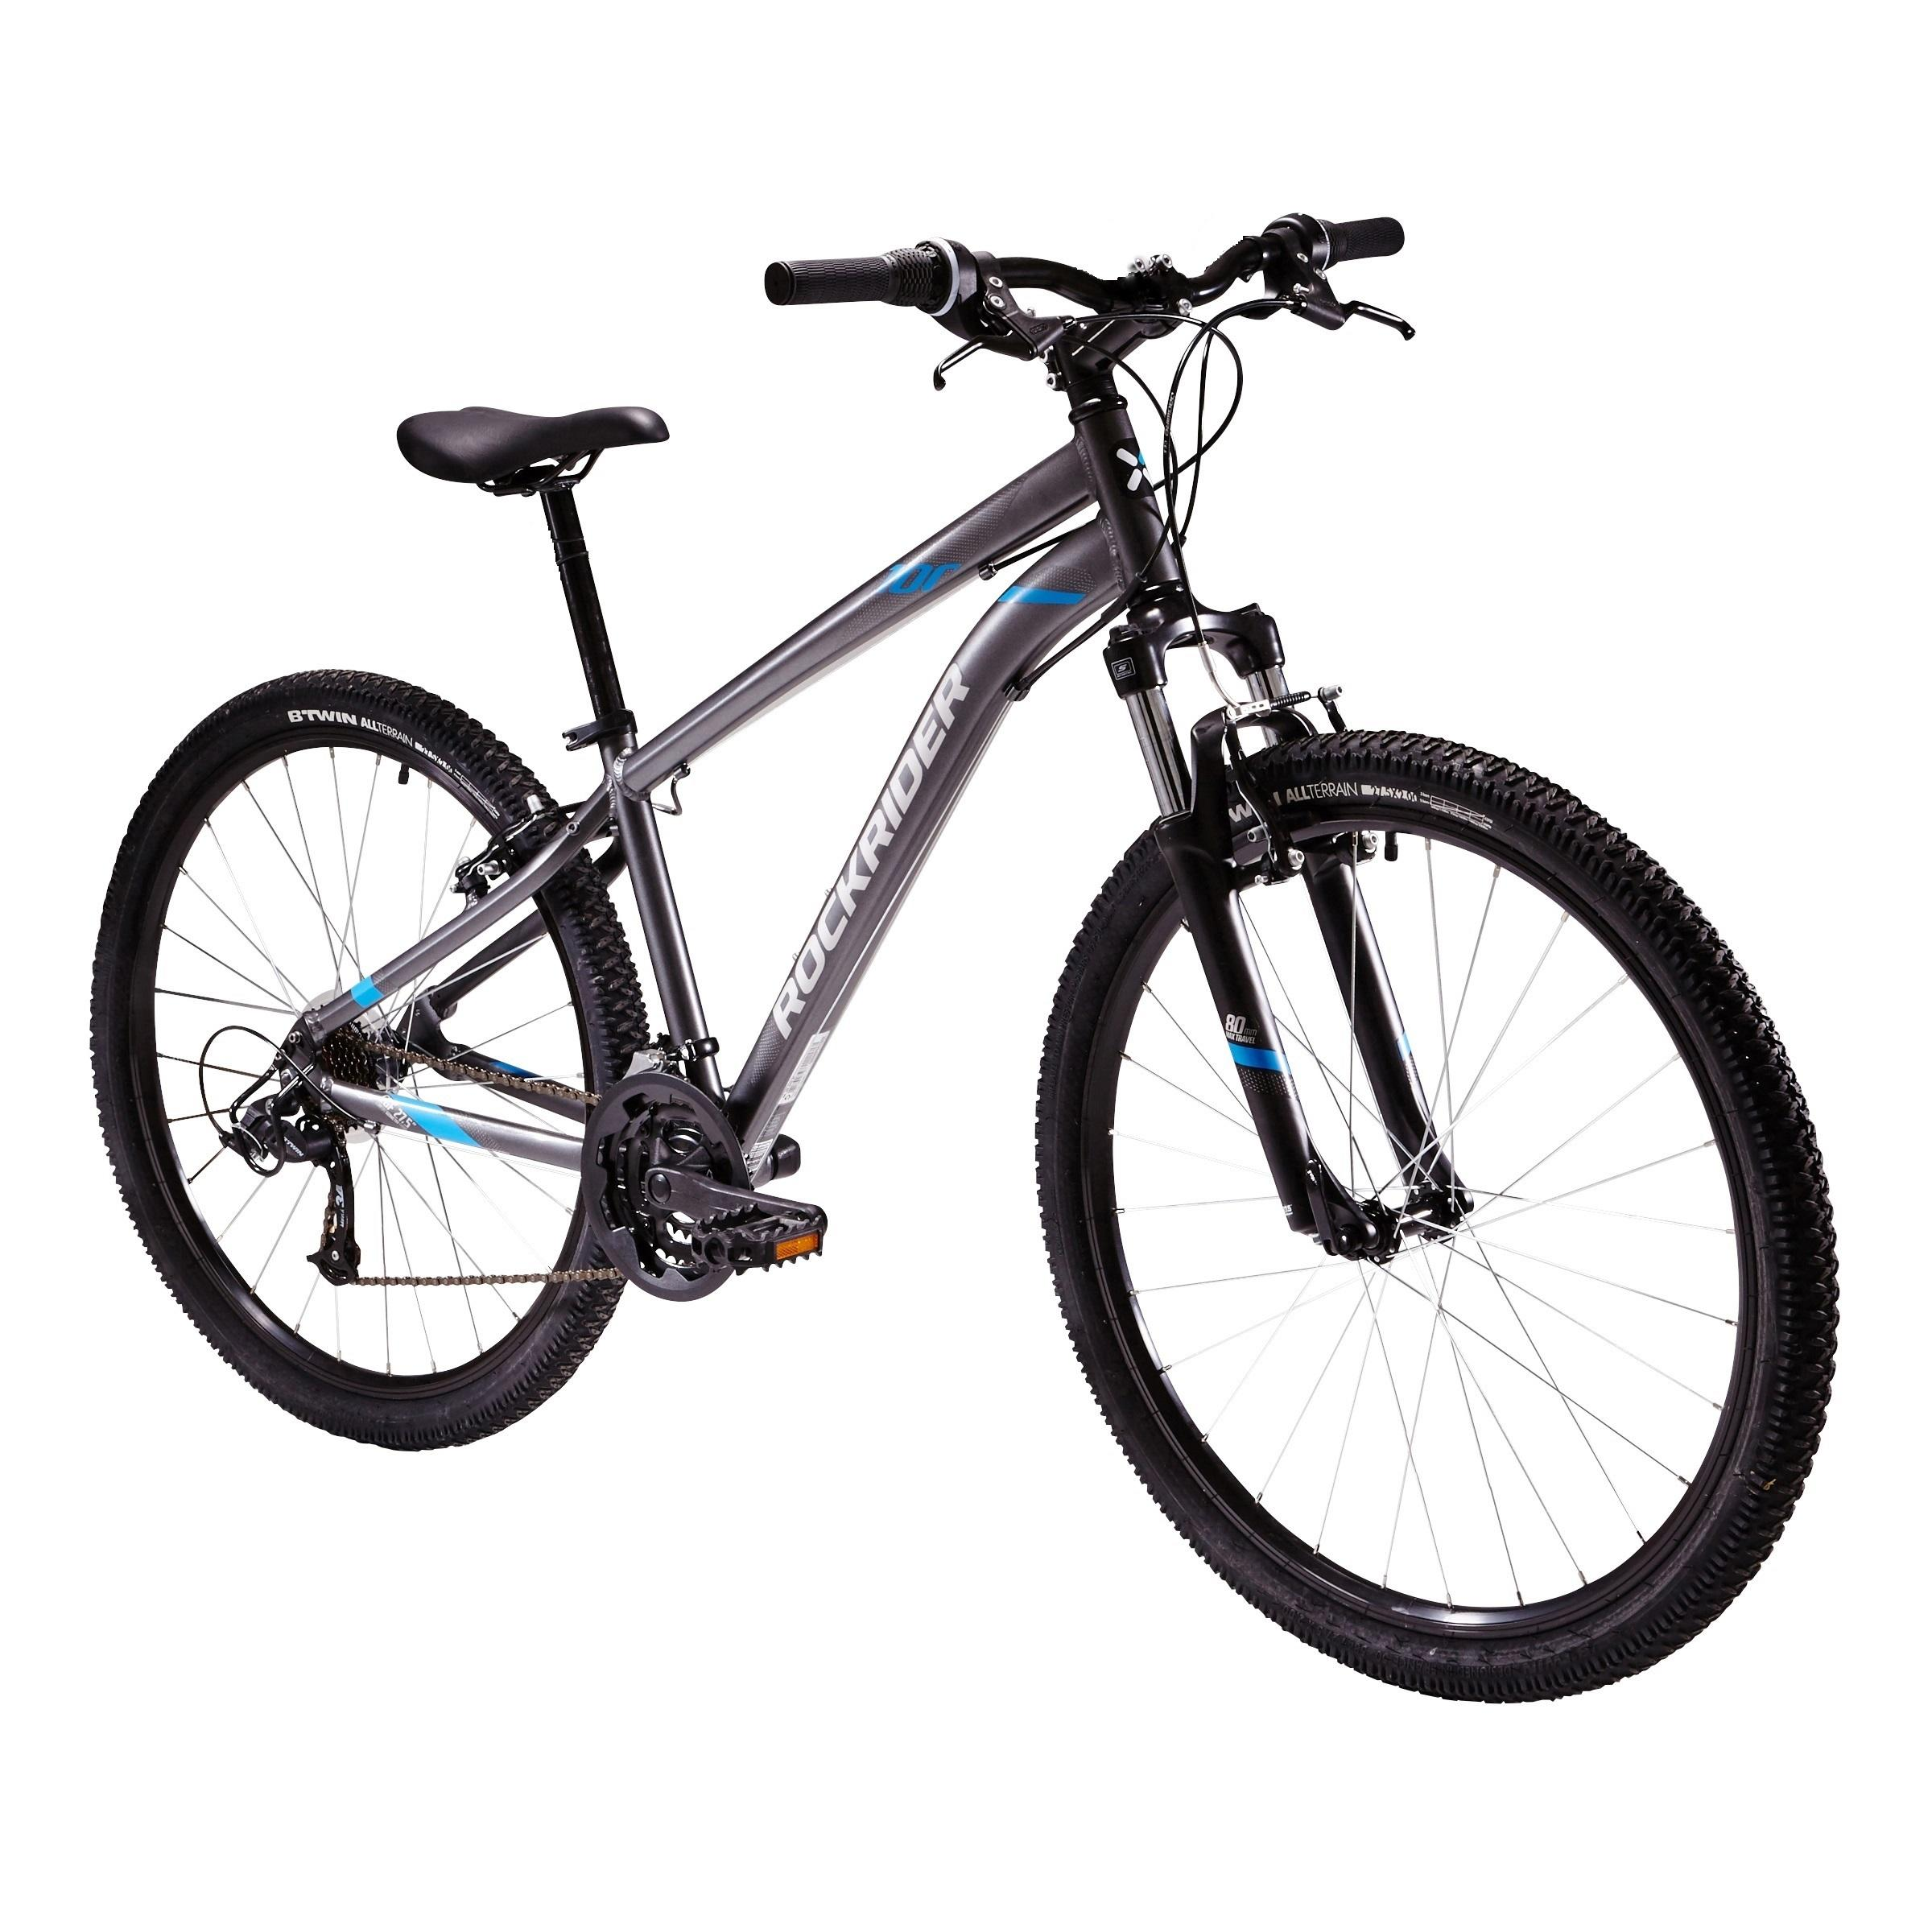 Rockrider St100 Mountain Bike